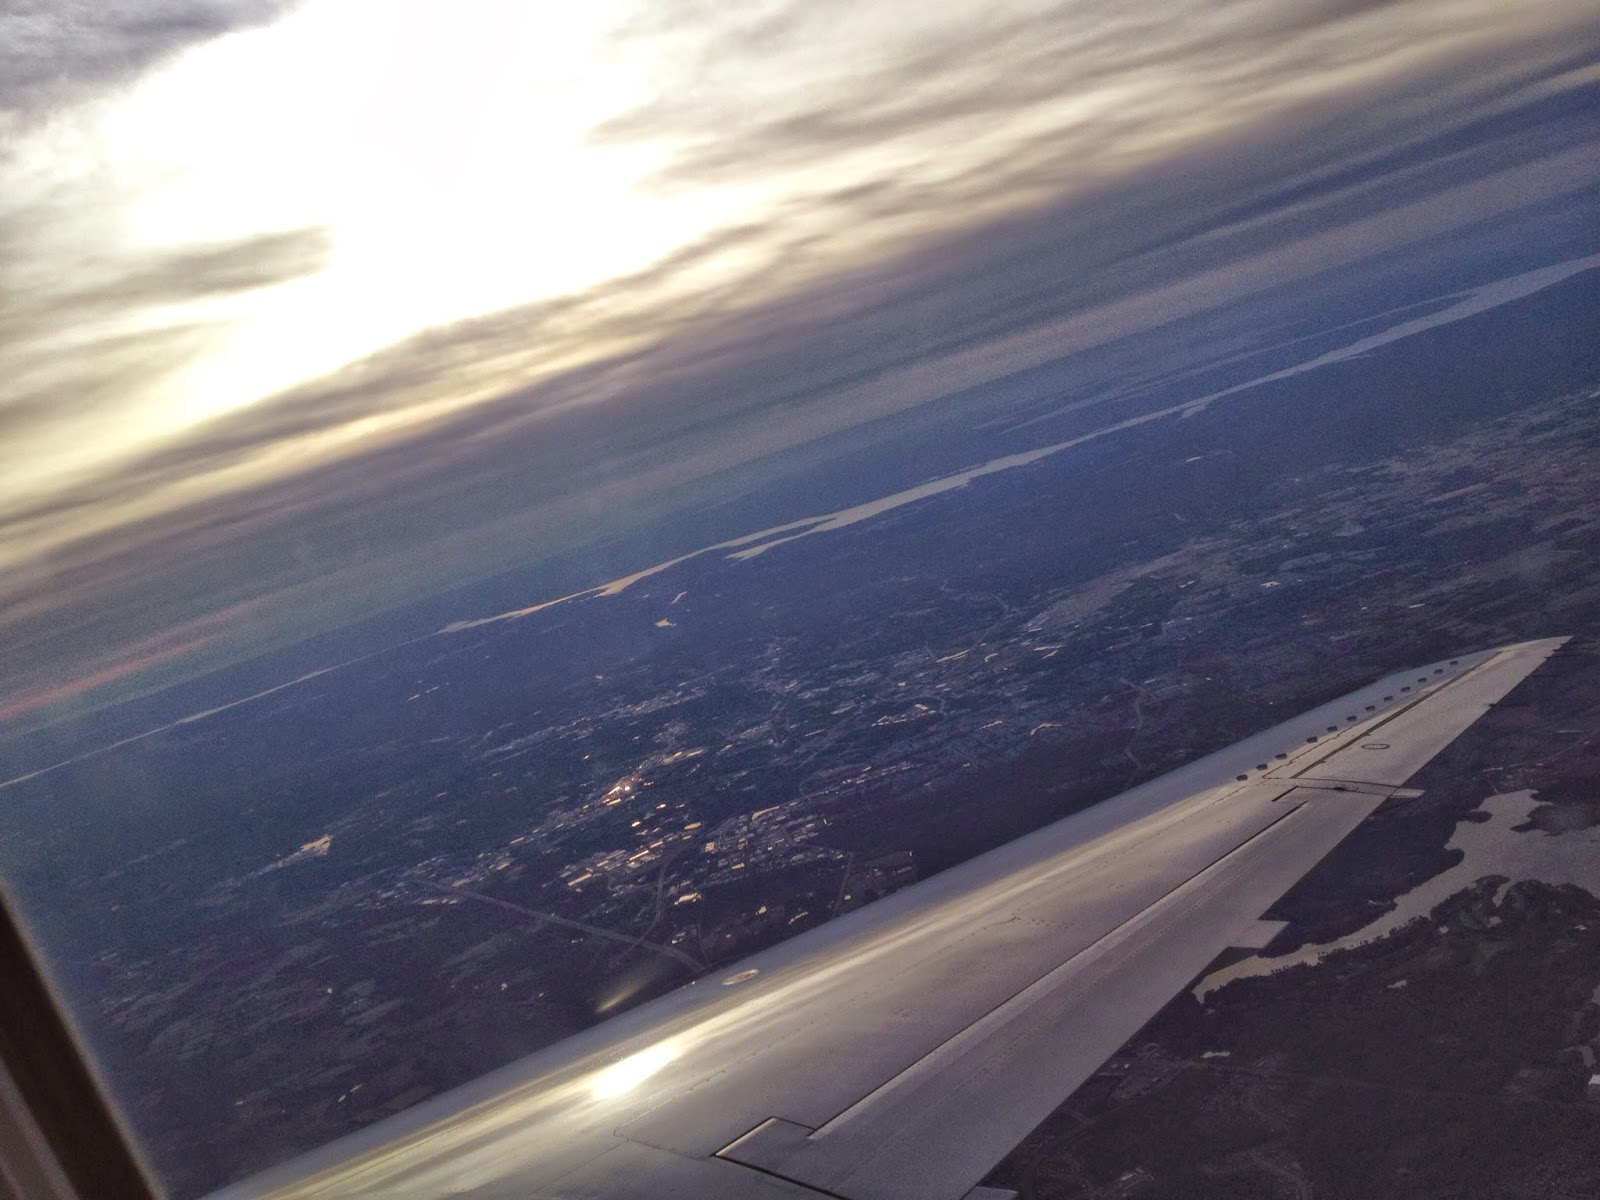 View of wing from an airplane window